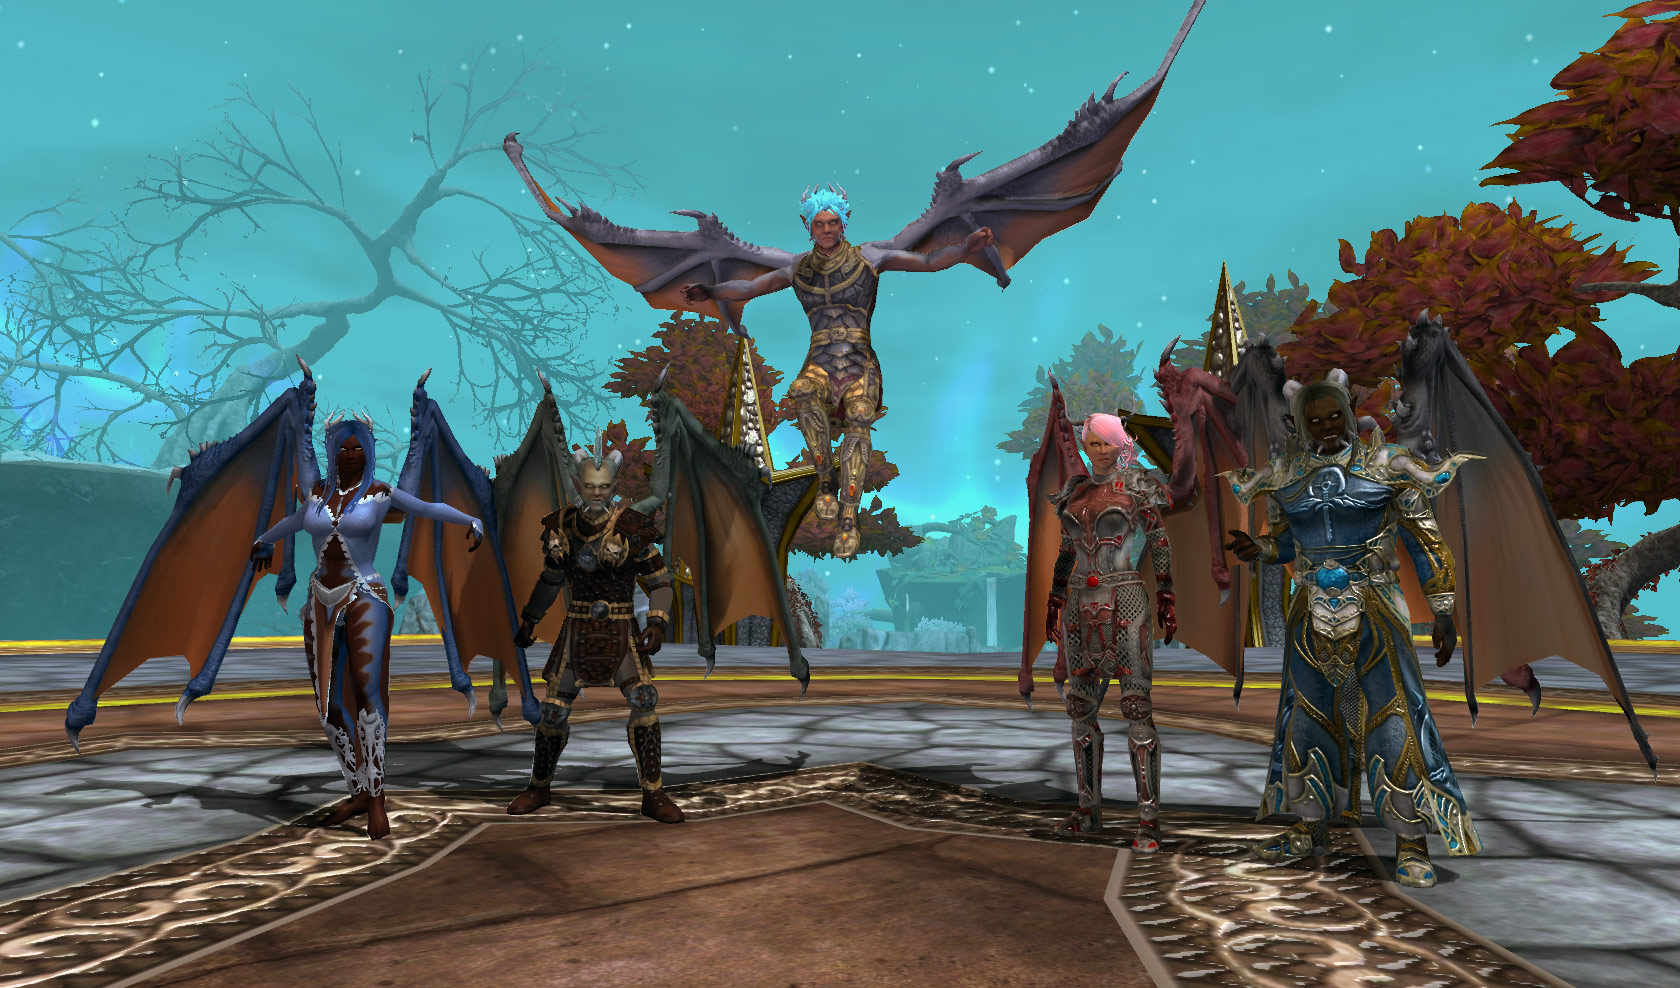 EQ2Wire » EQ2 ZAM Interviews Lyndro, Windstalker About New